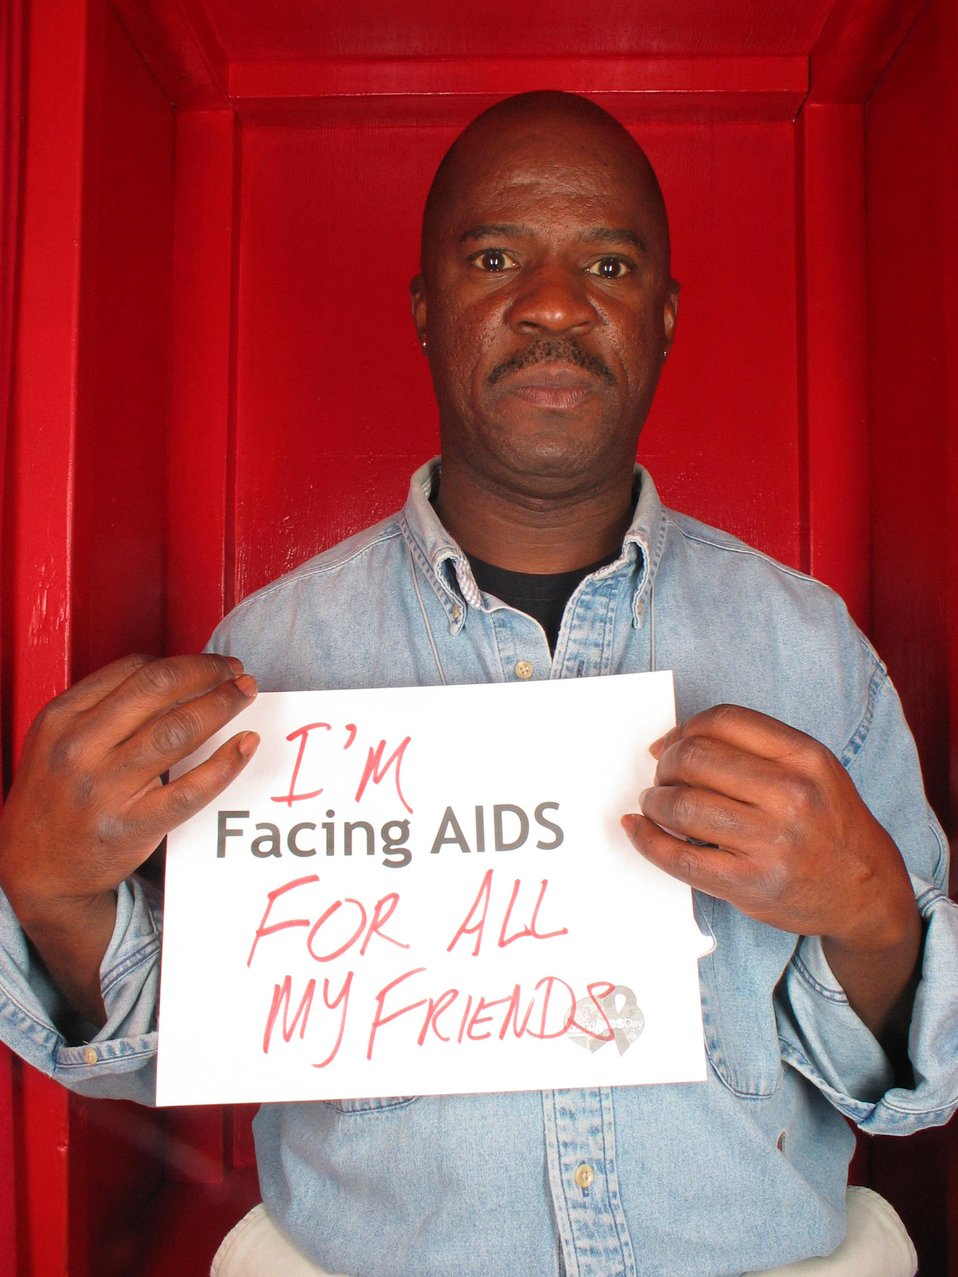 I'm Facing AIDS for all my friends